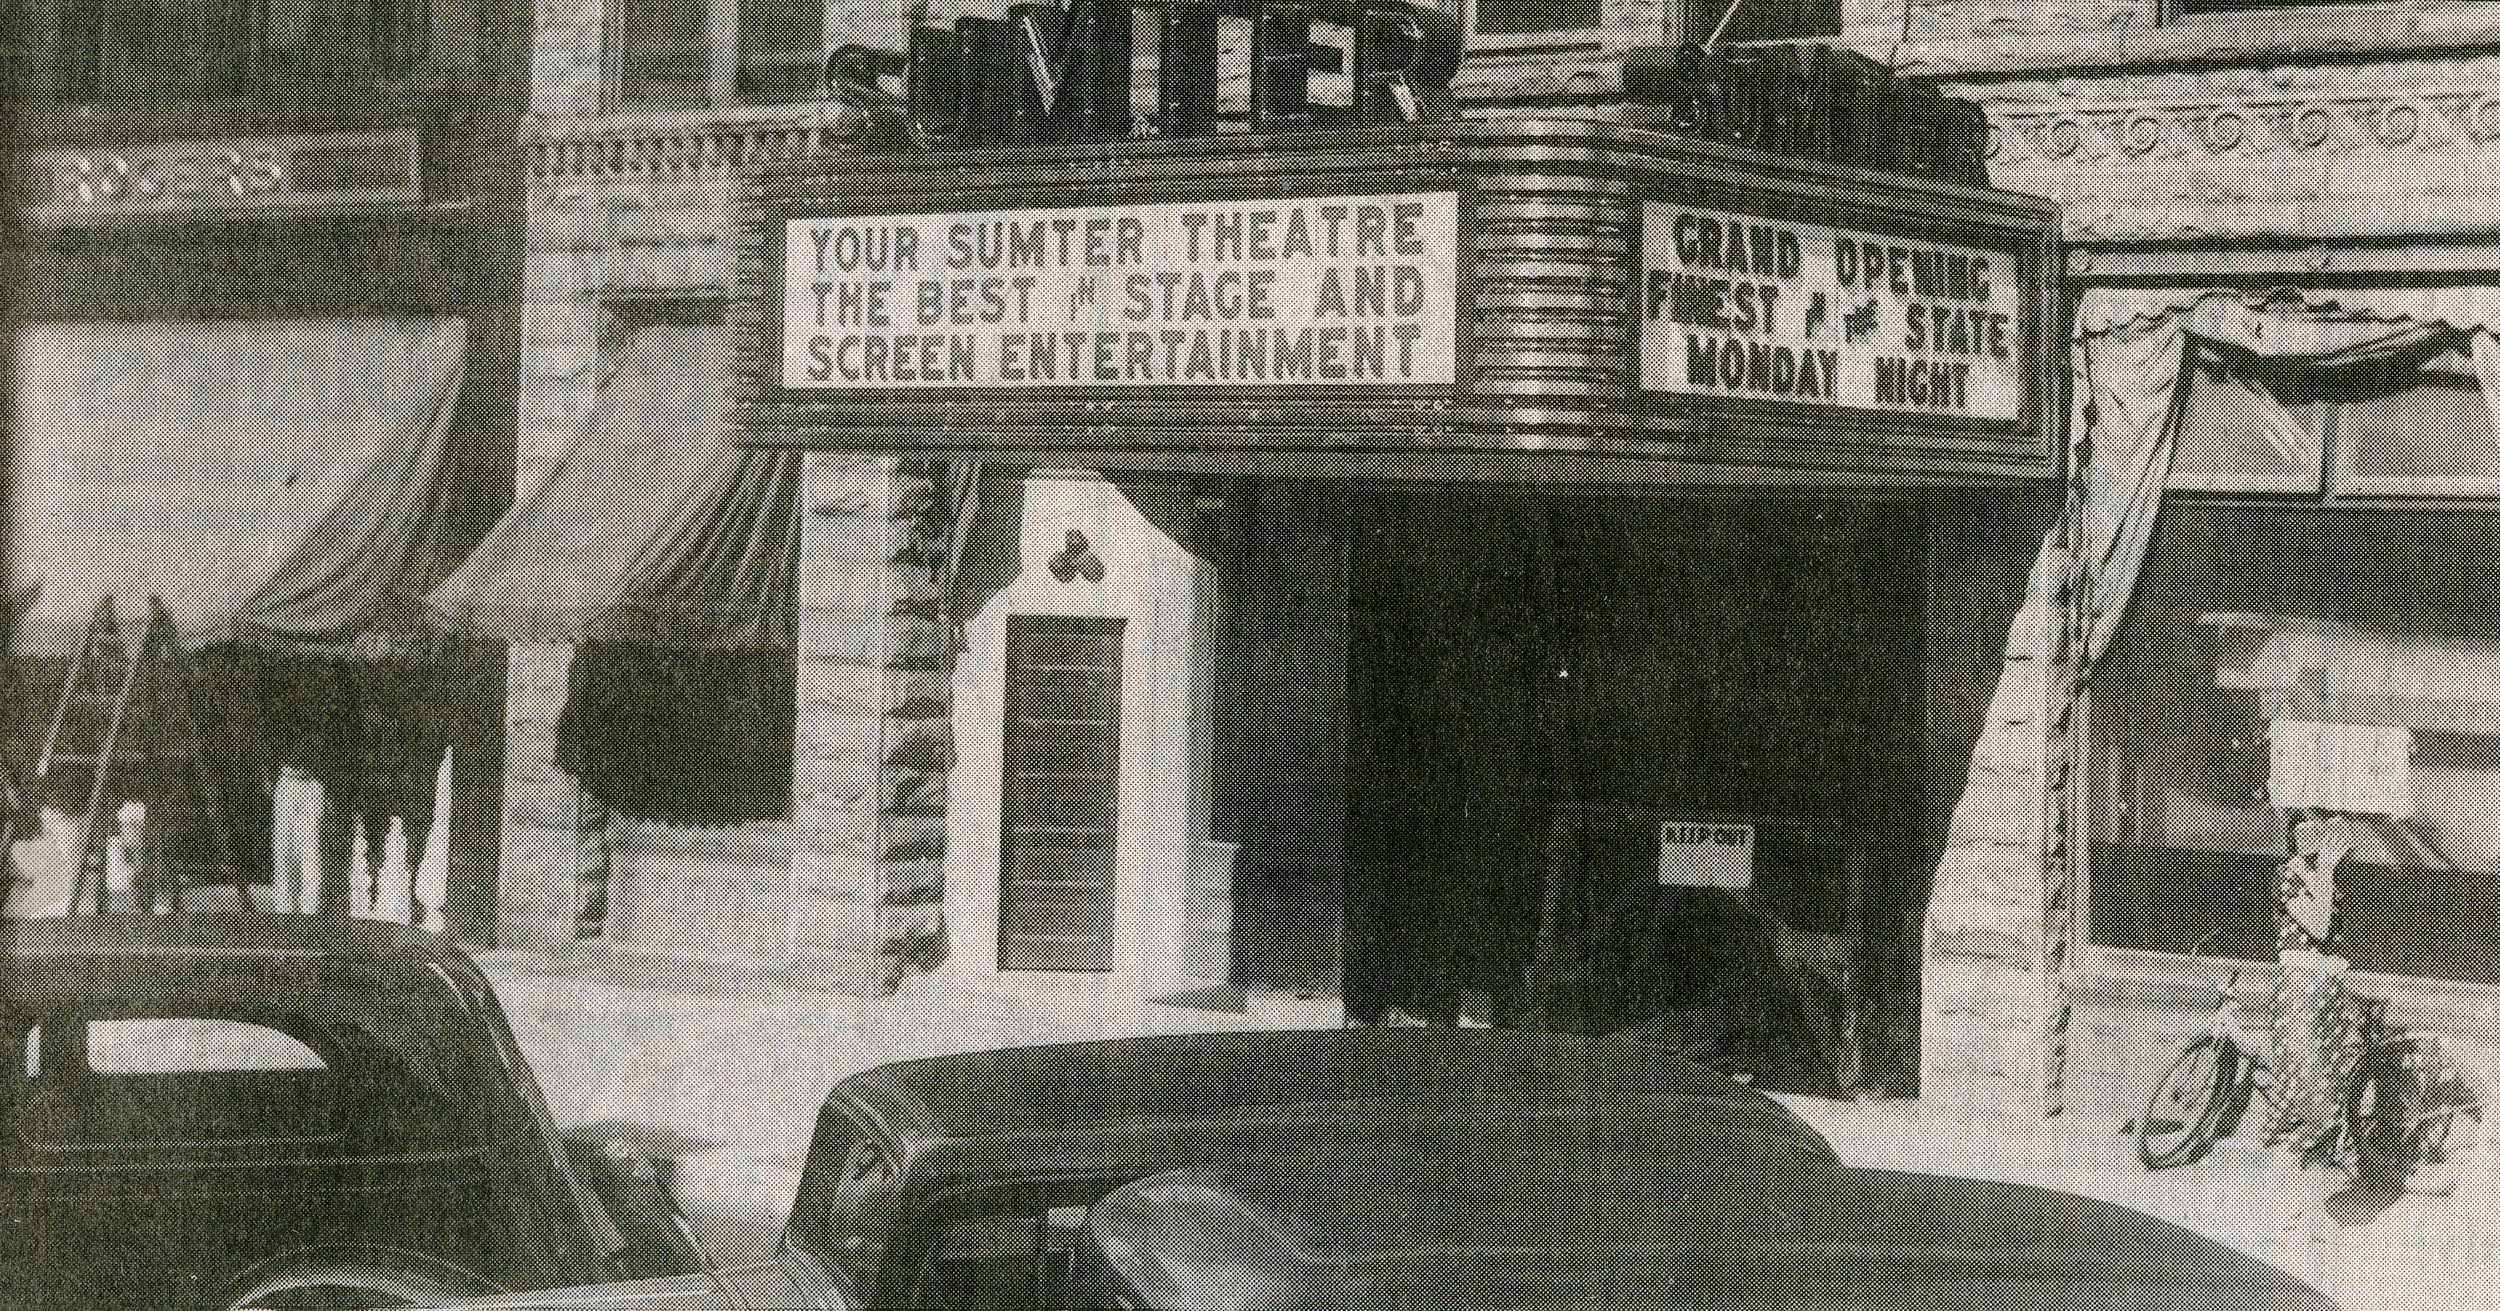 The Sumter Opera House opened Aug. 31, 1936, as The Sumter Theatre, one of the finest movie theaters in the South.